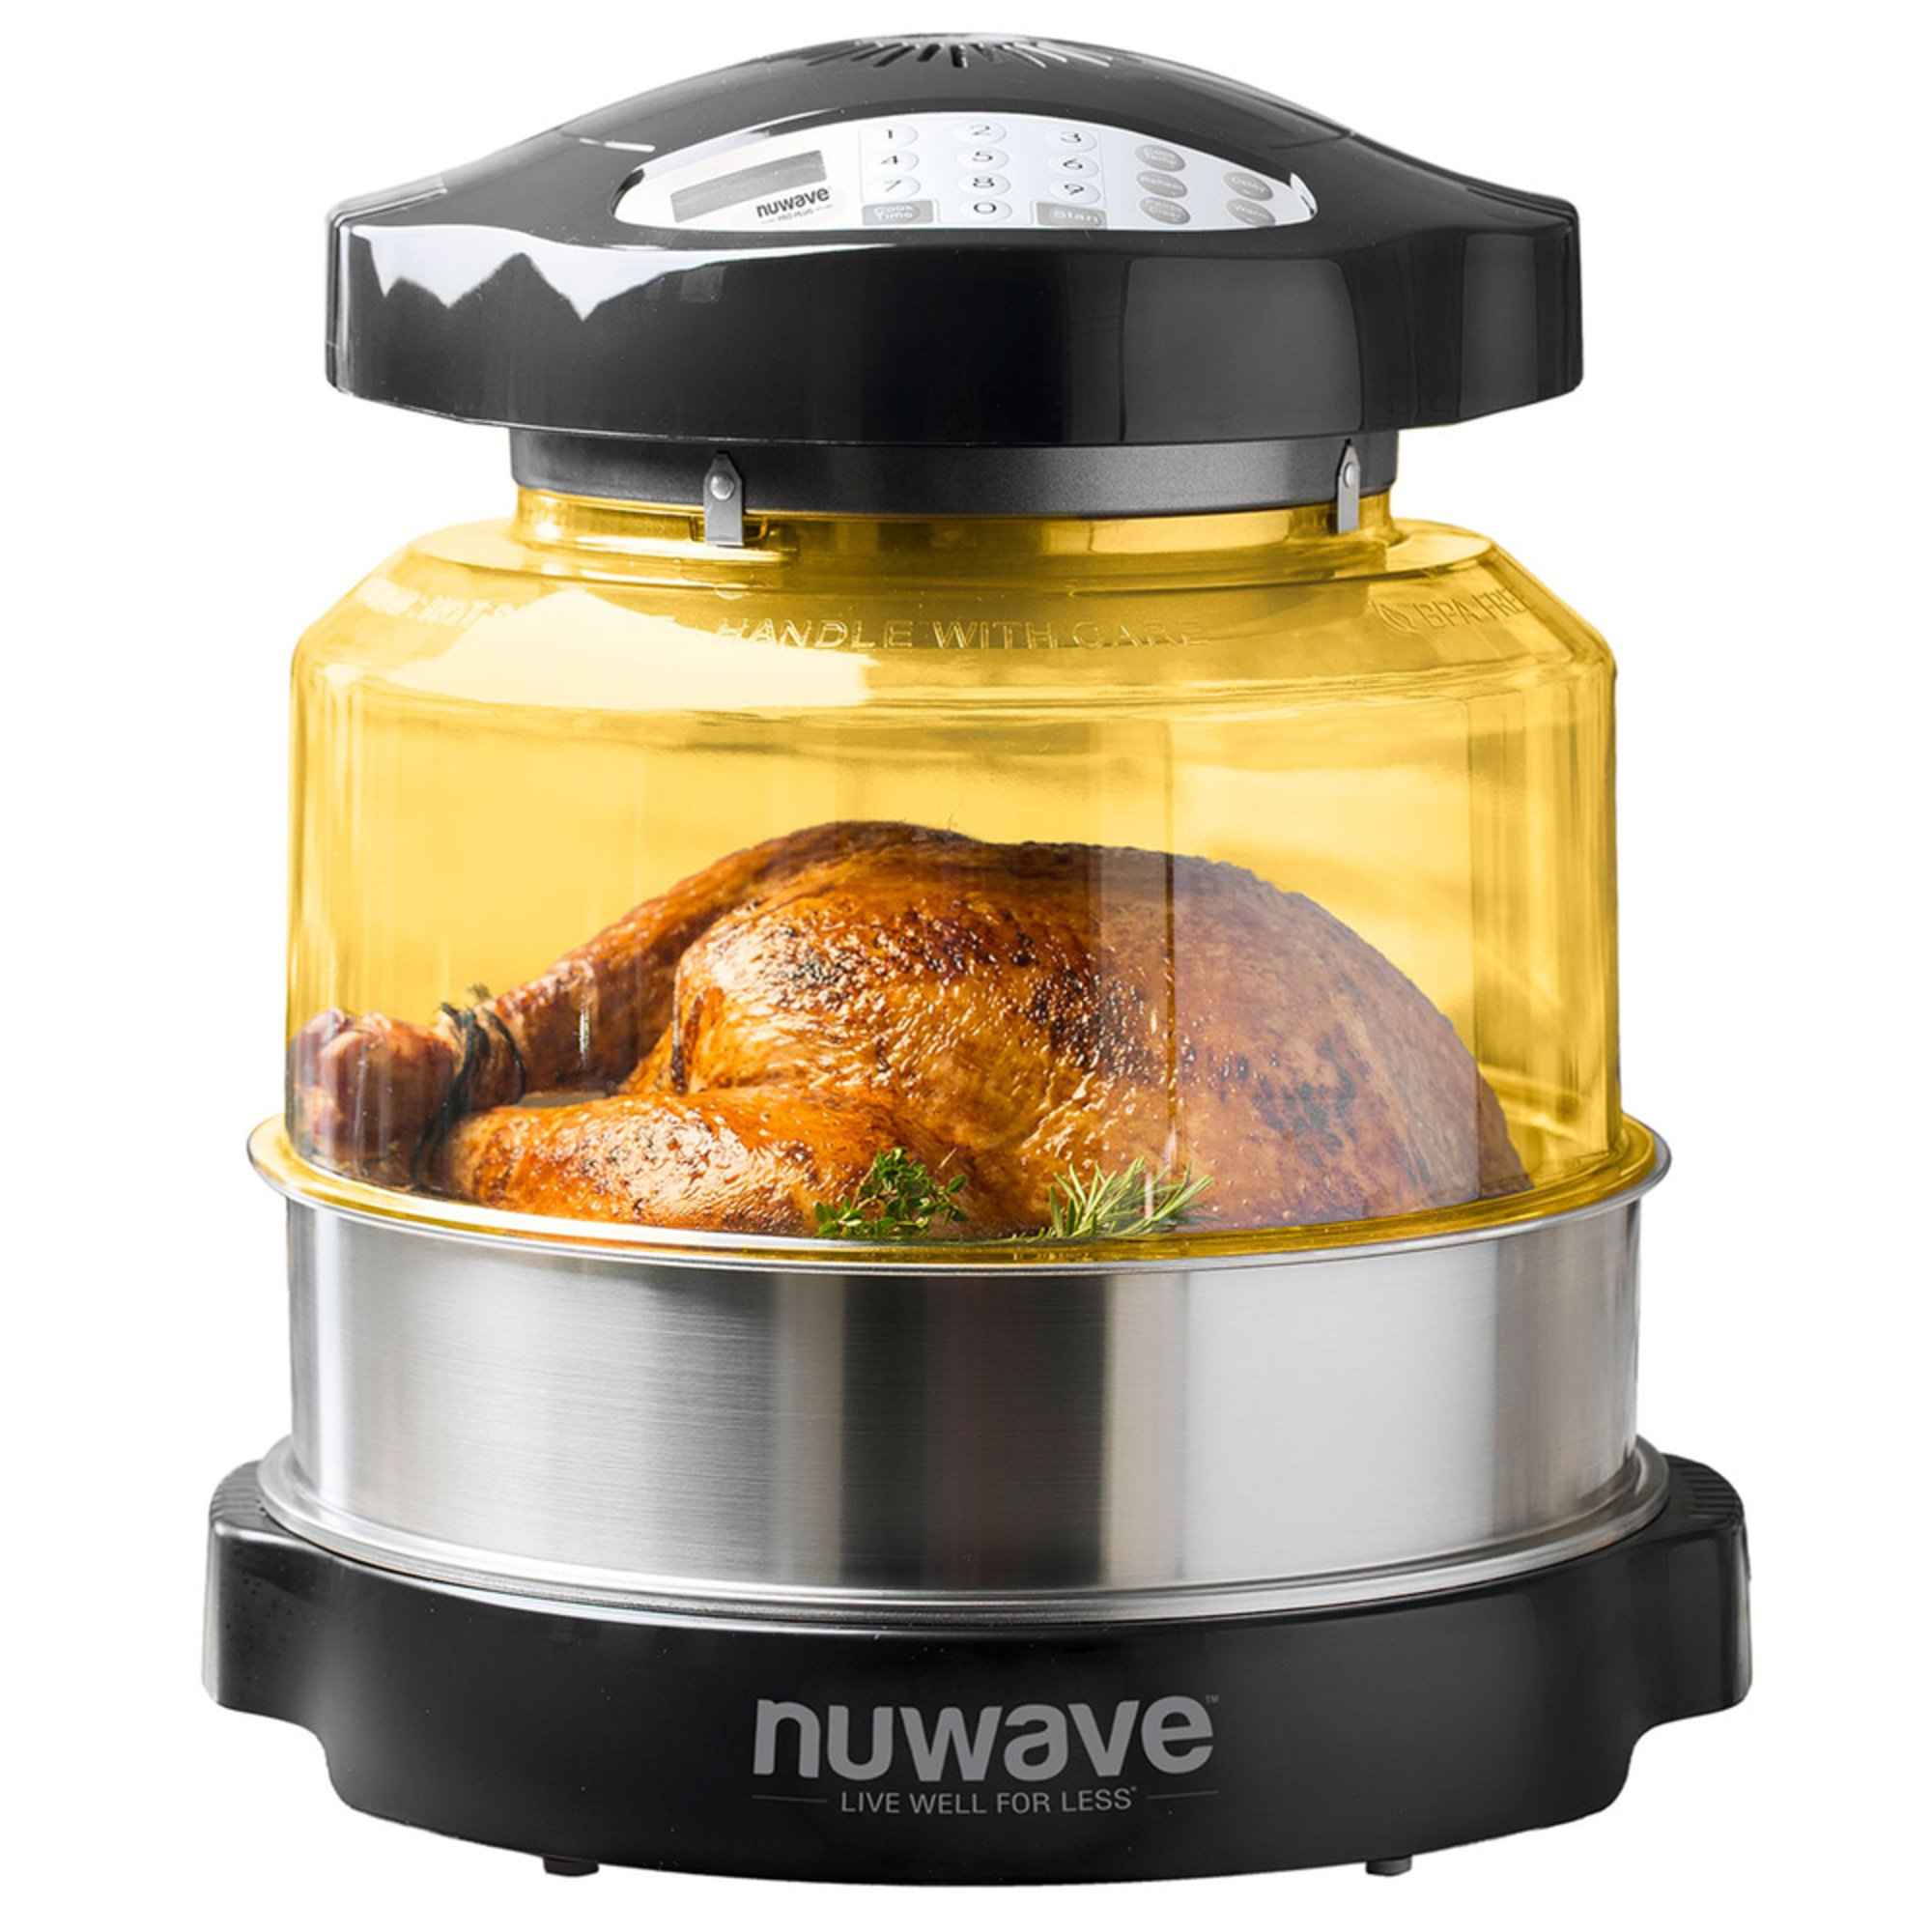 The As Seen on TV NuWave Oven Pro uses triple combo cooking power to cook your food up to 50 percent faster — while using up to 85 percent less energy.